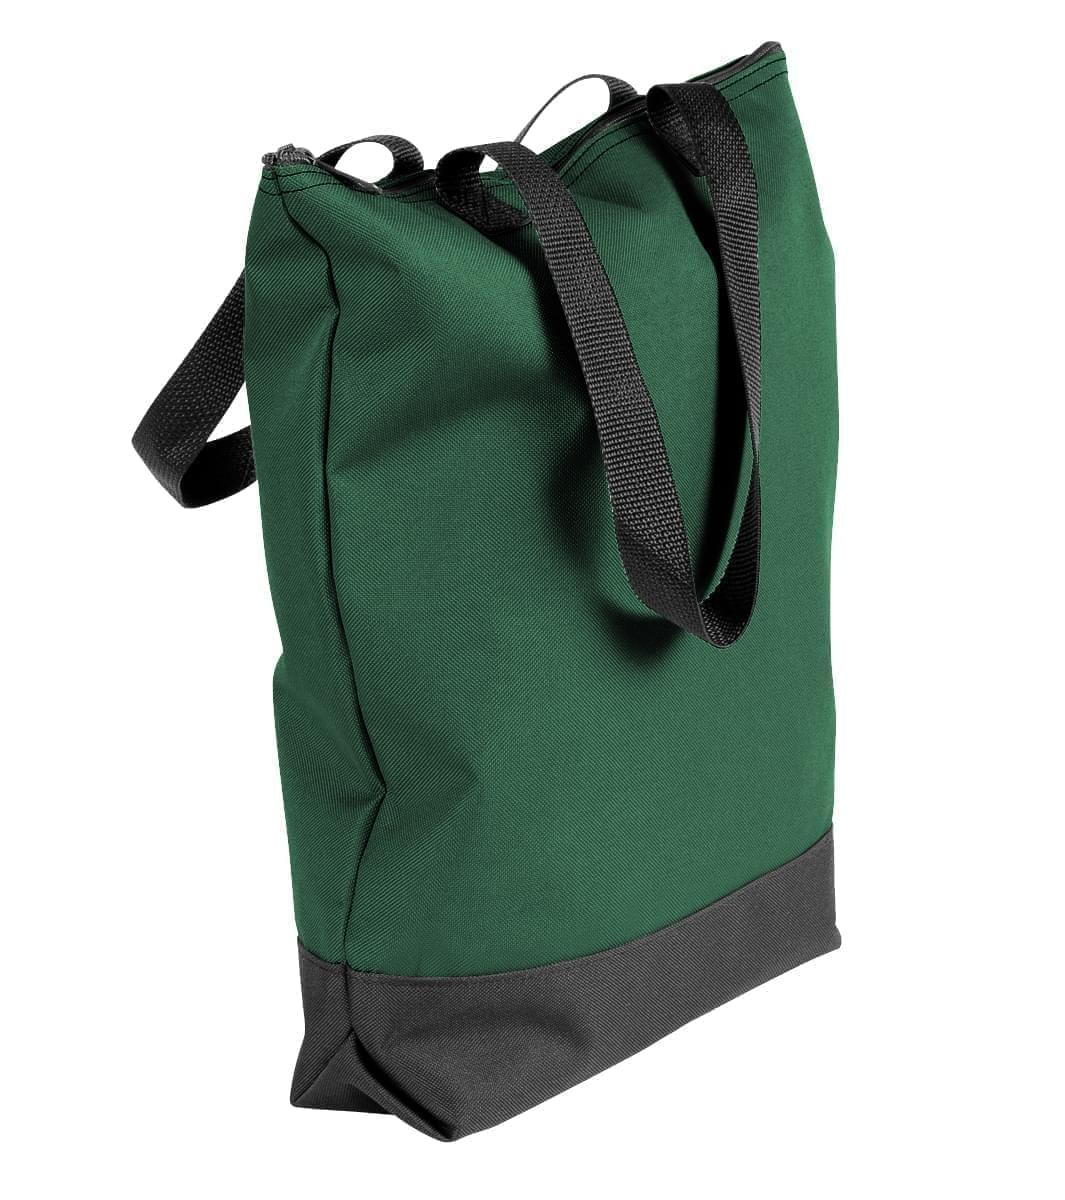 USA Made Poly Notebook Tote Bags, Hunter Green-Black, 1AAMX1UASR